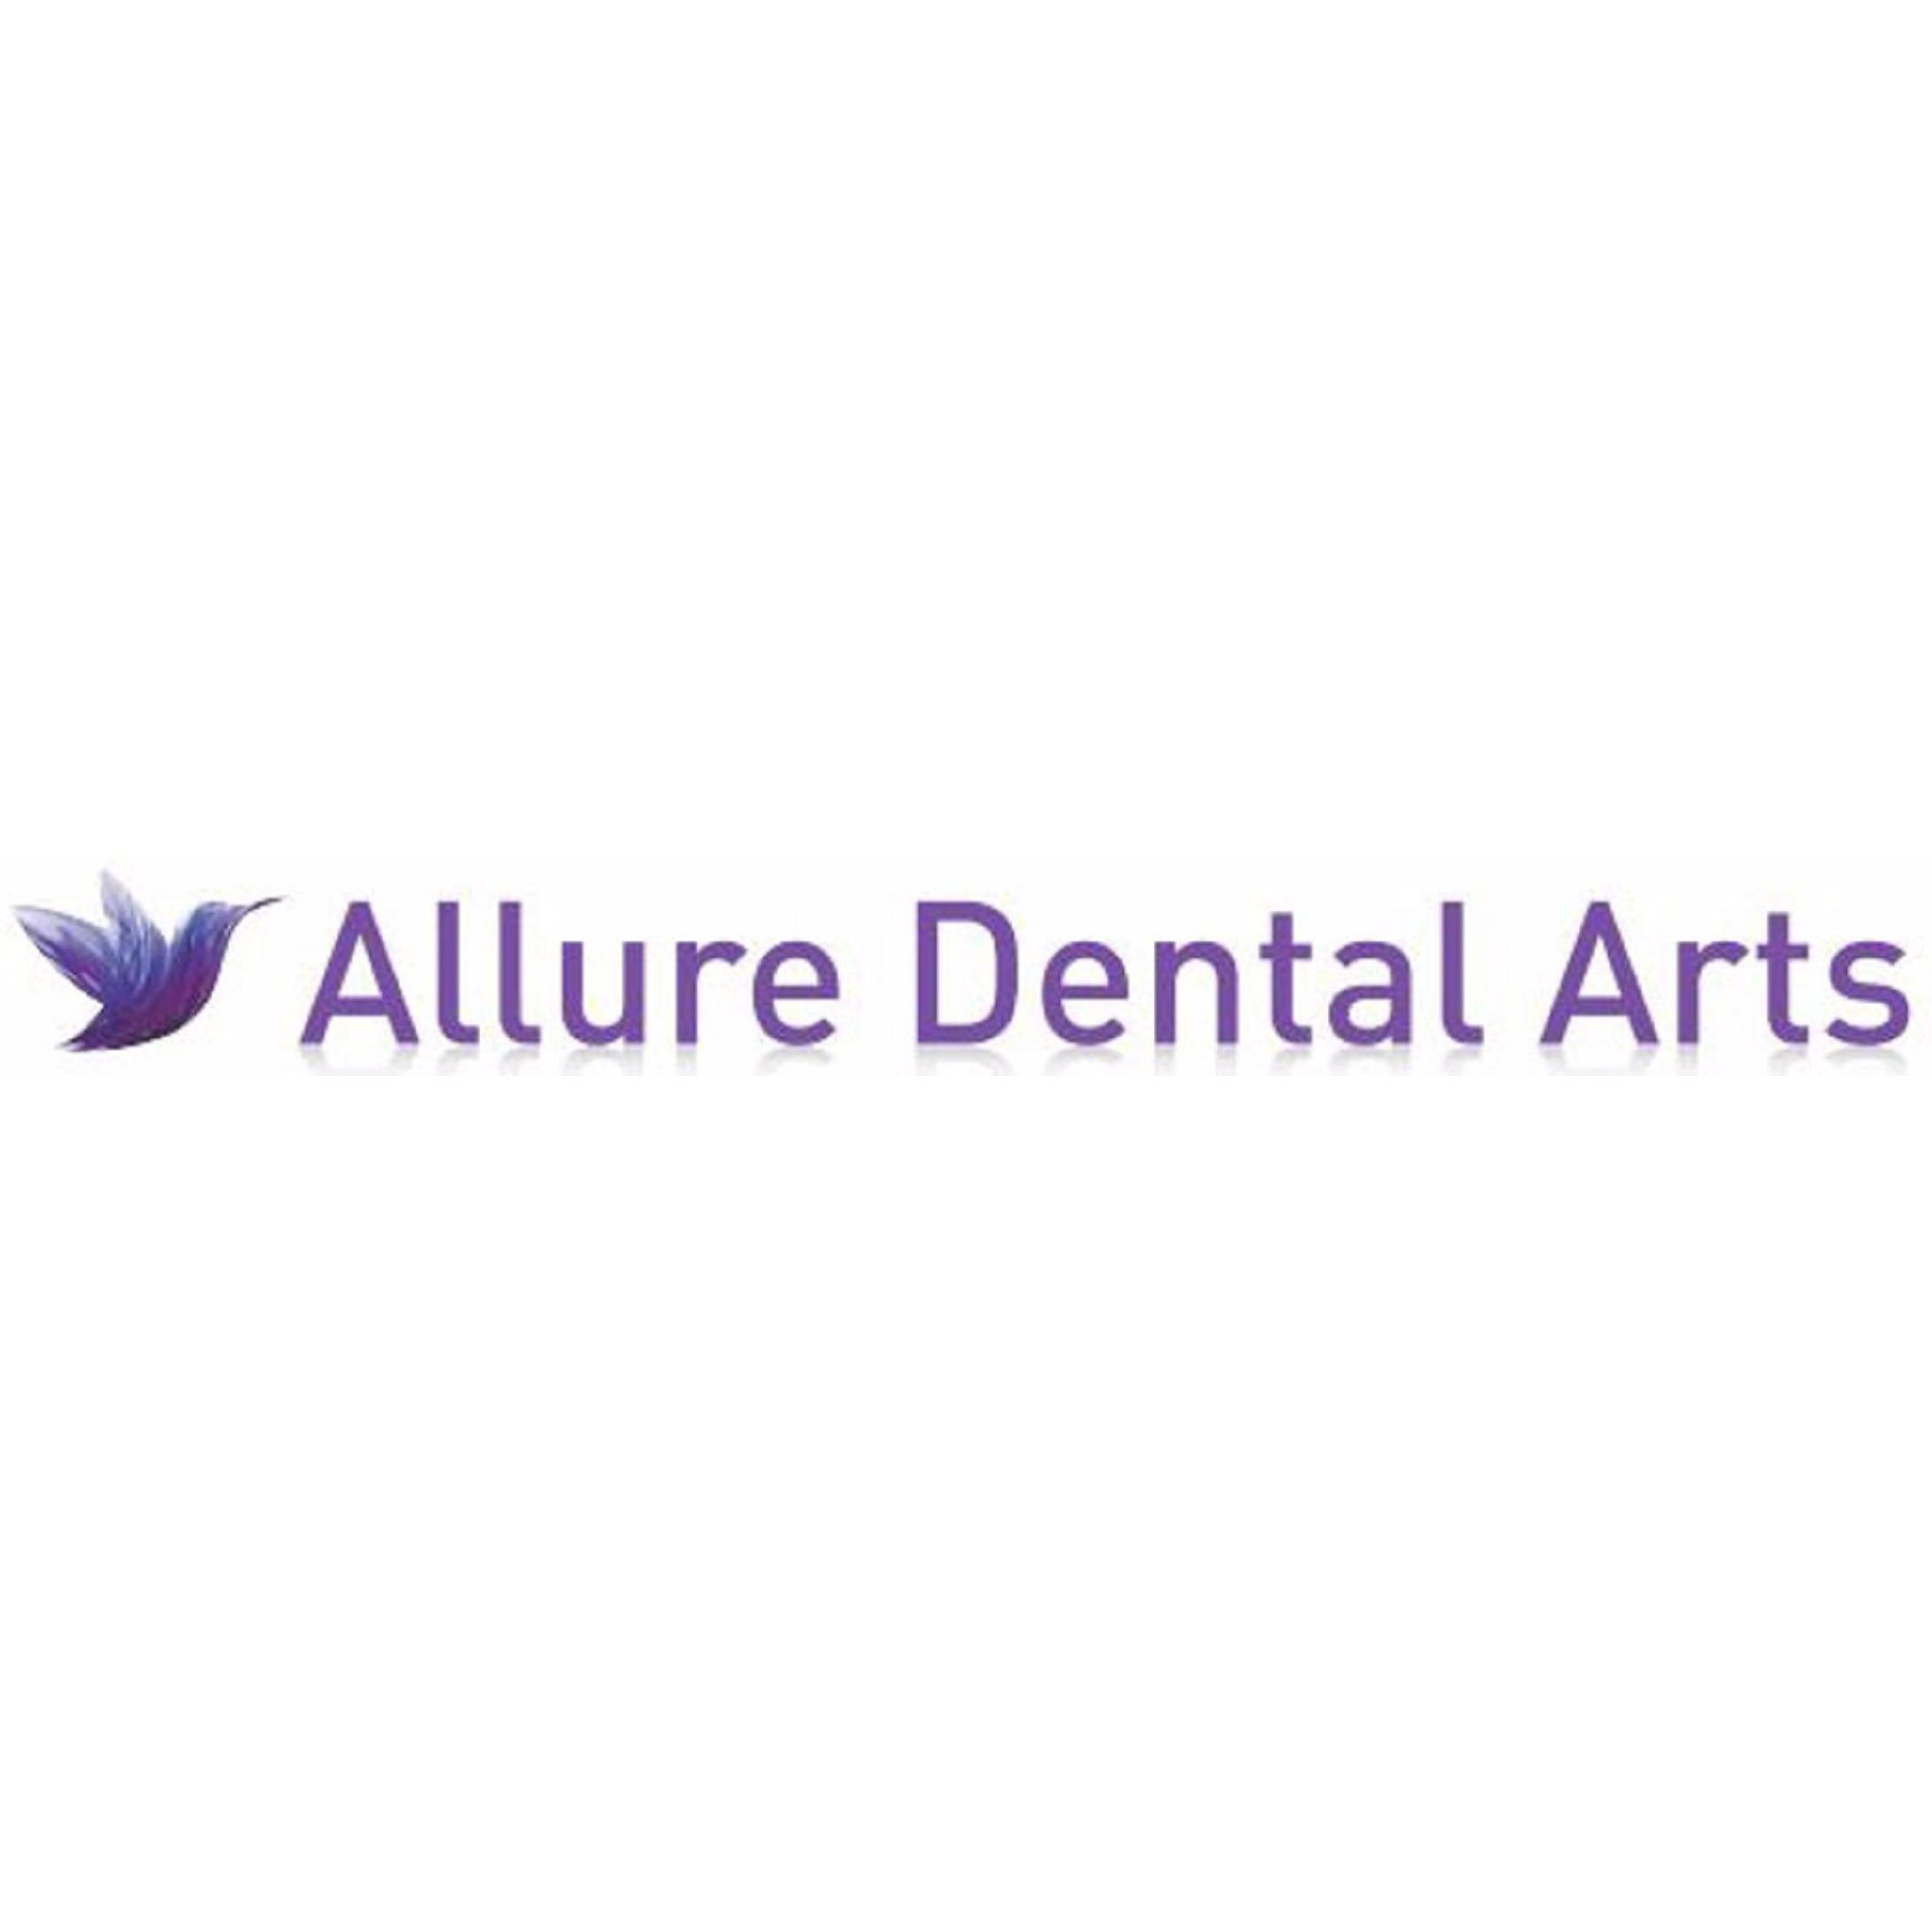 Allure Dental Arts